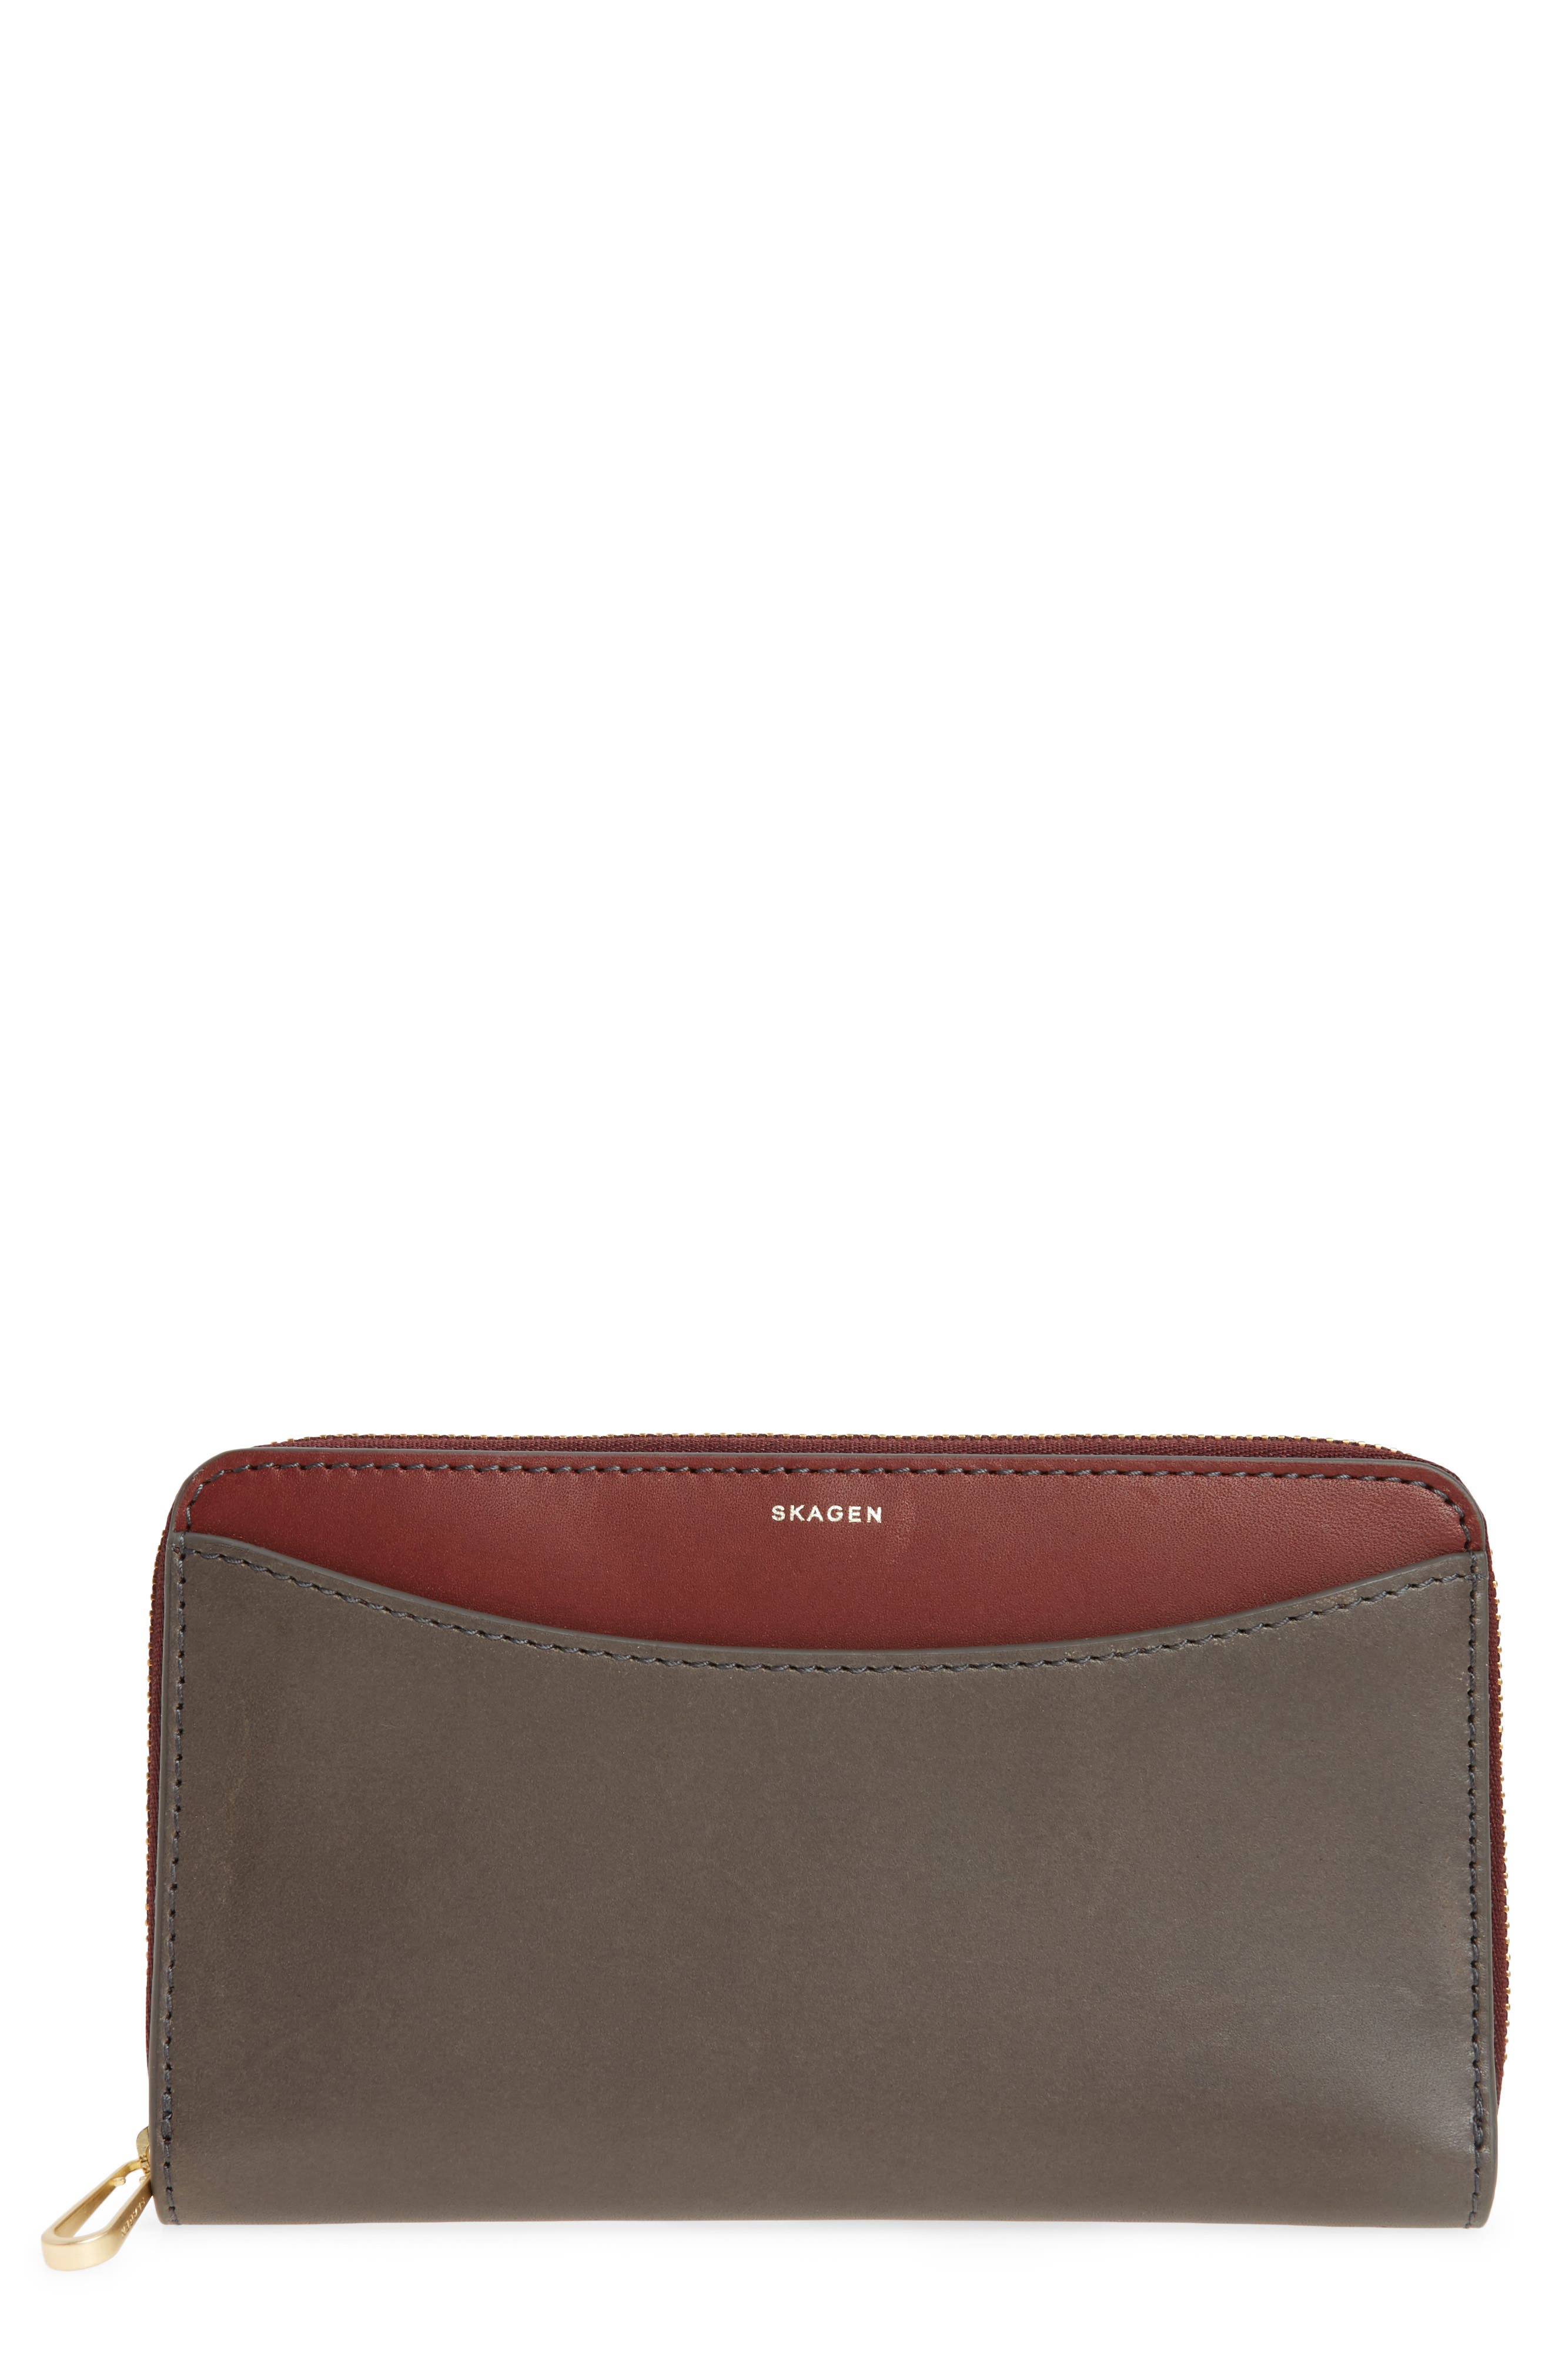 Main Image - Skagen Compact Continental Wallet